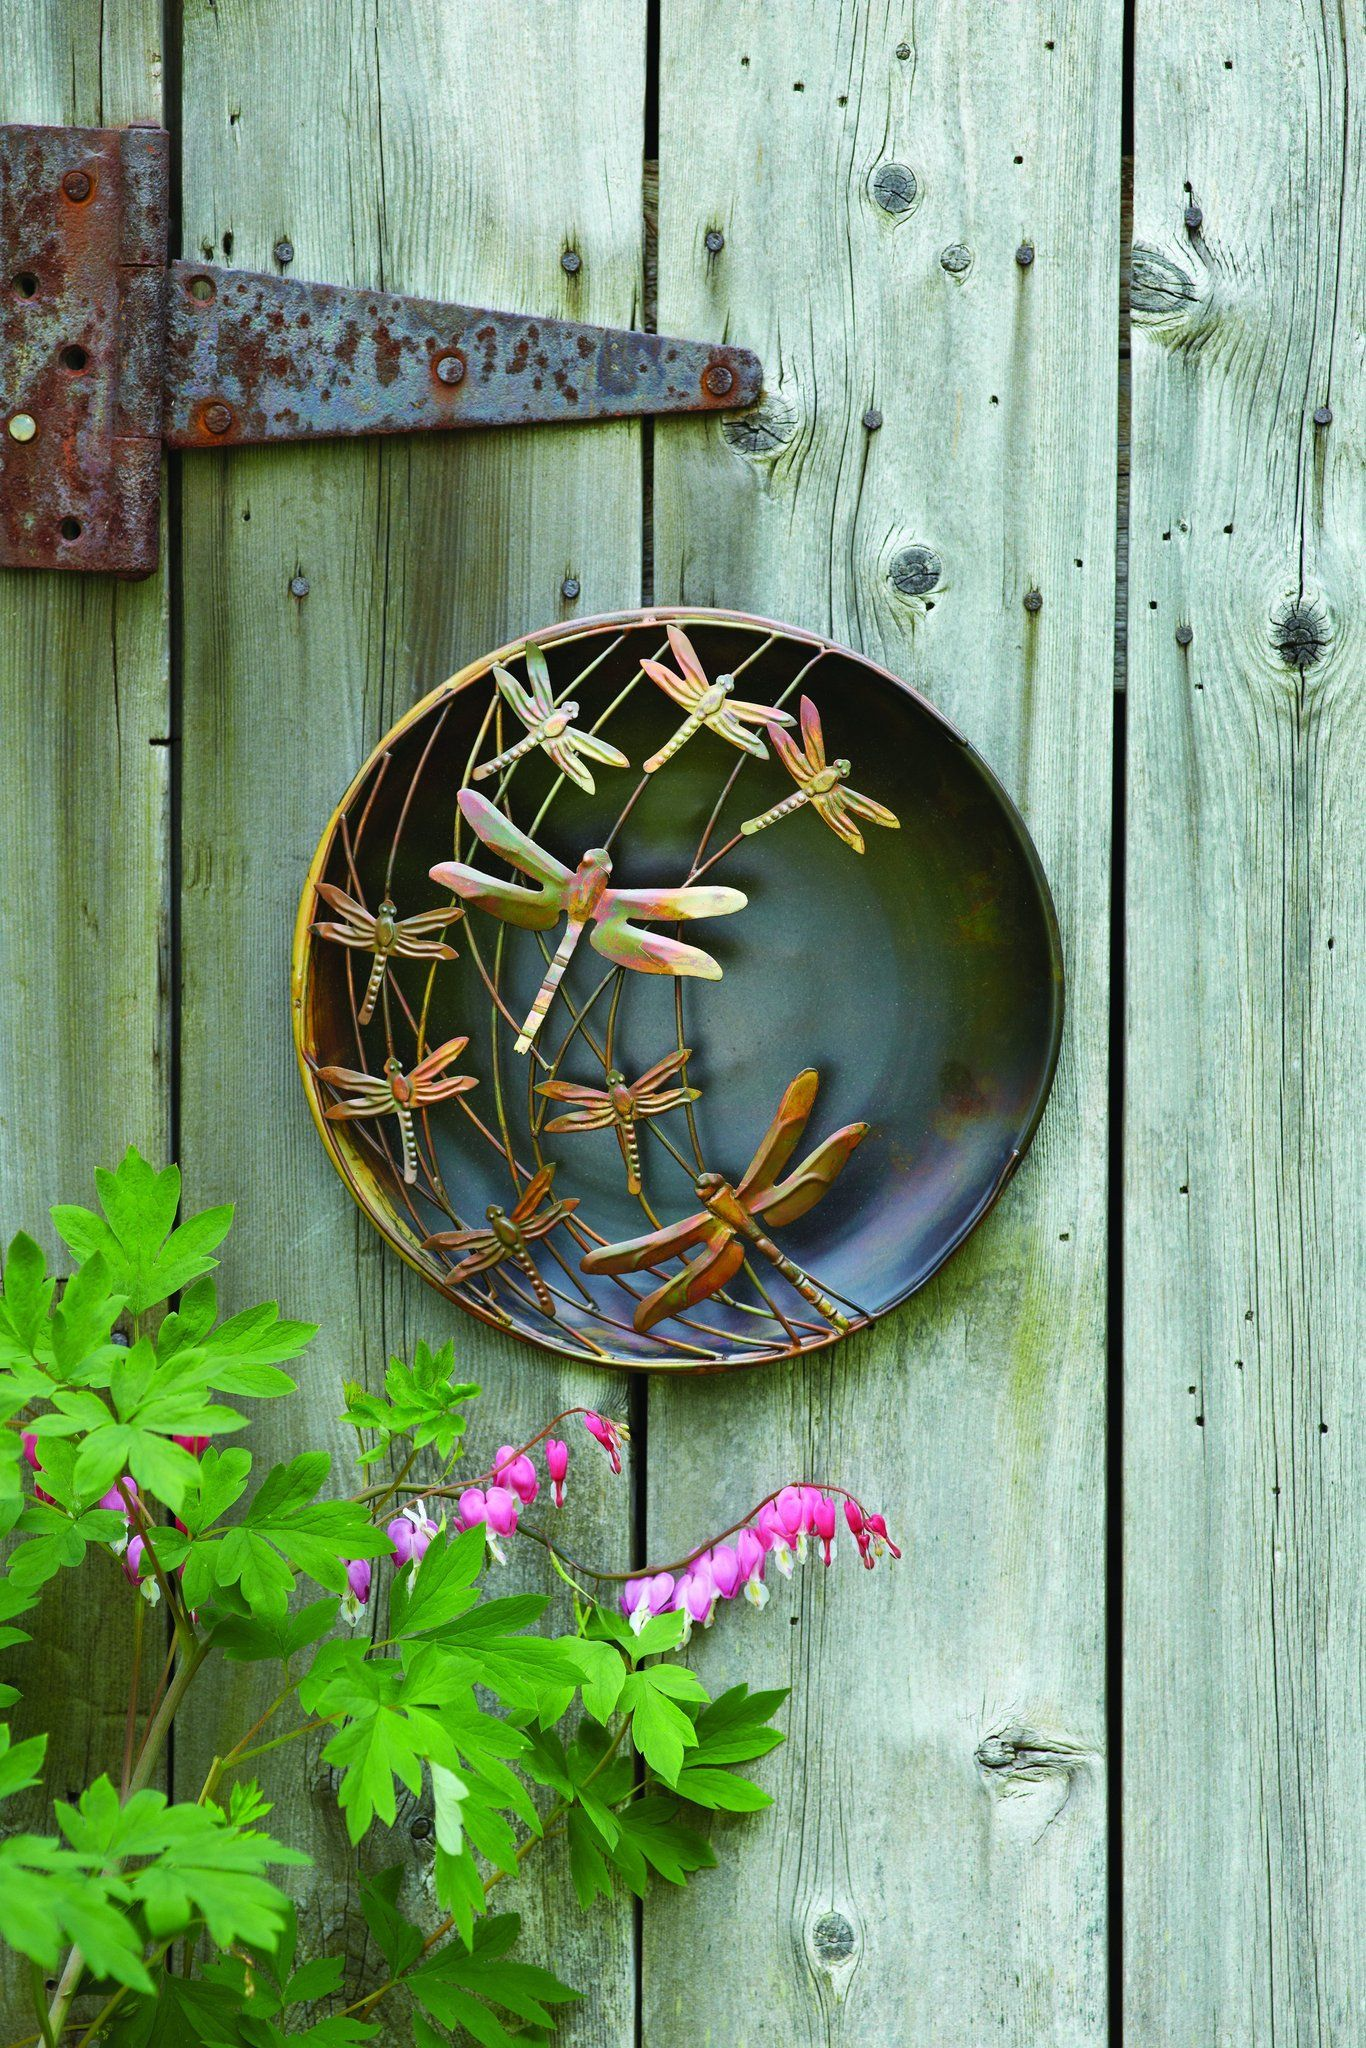 12 Flamed Raised Dragonflies Wall Disc Garden Yard Decor Set Your Imagination Free While Adorning Any Indoor Or Outdoor E